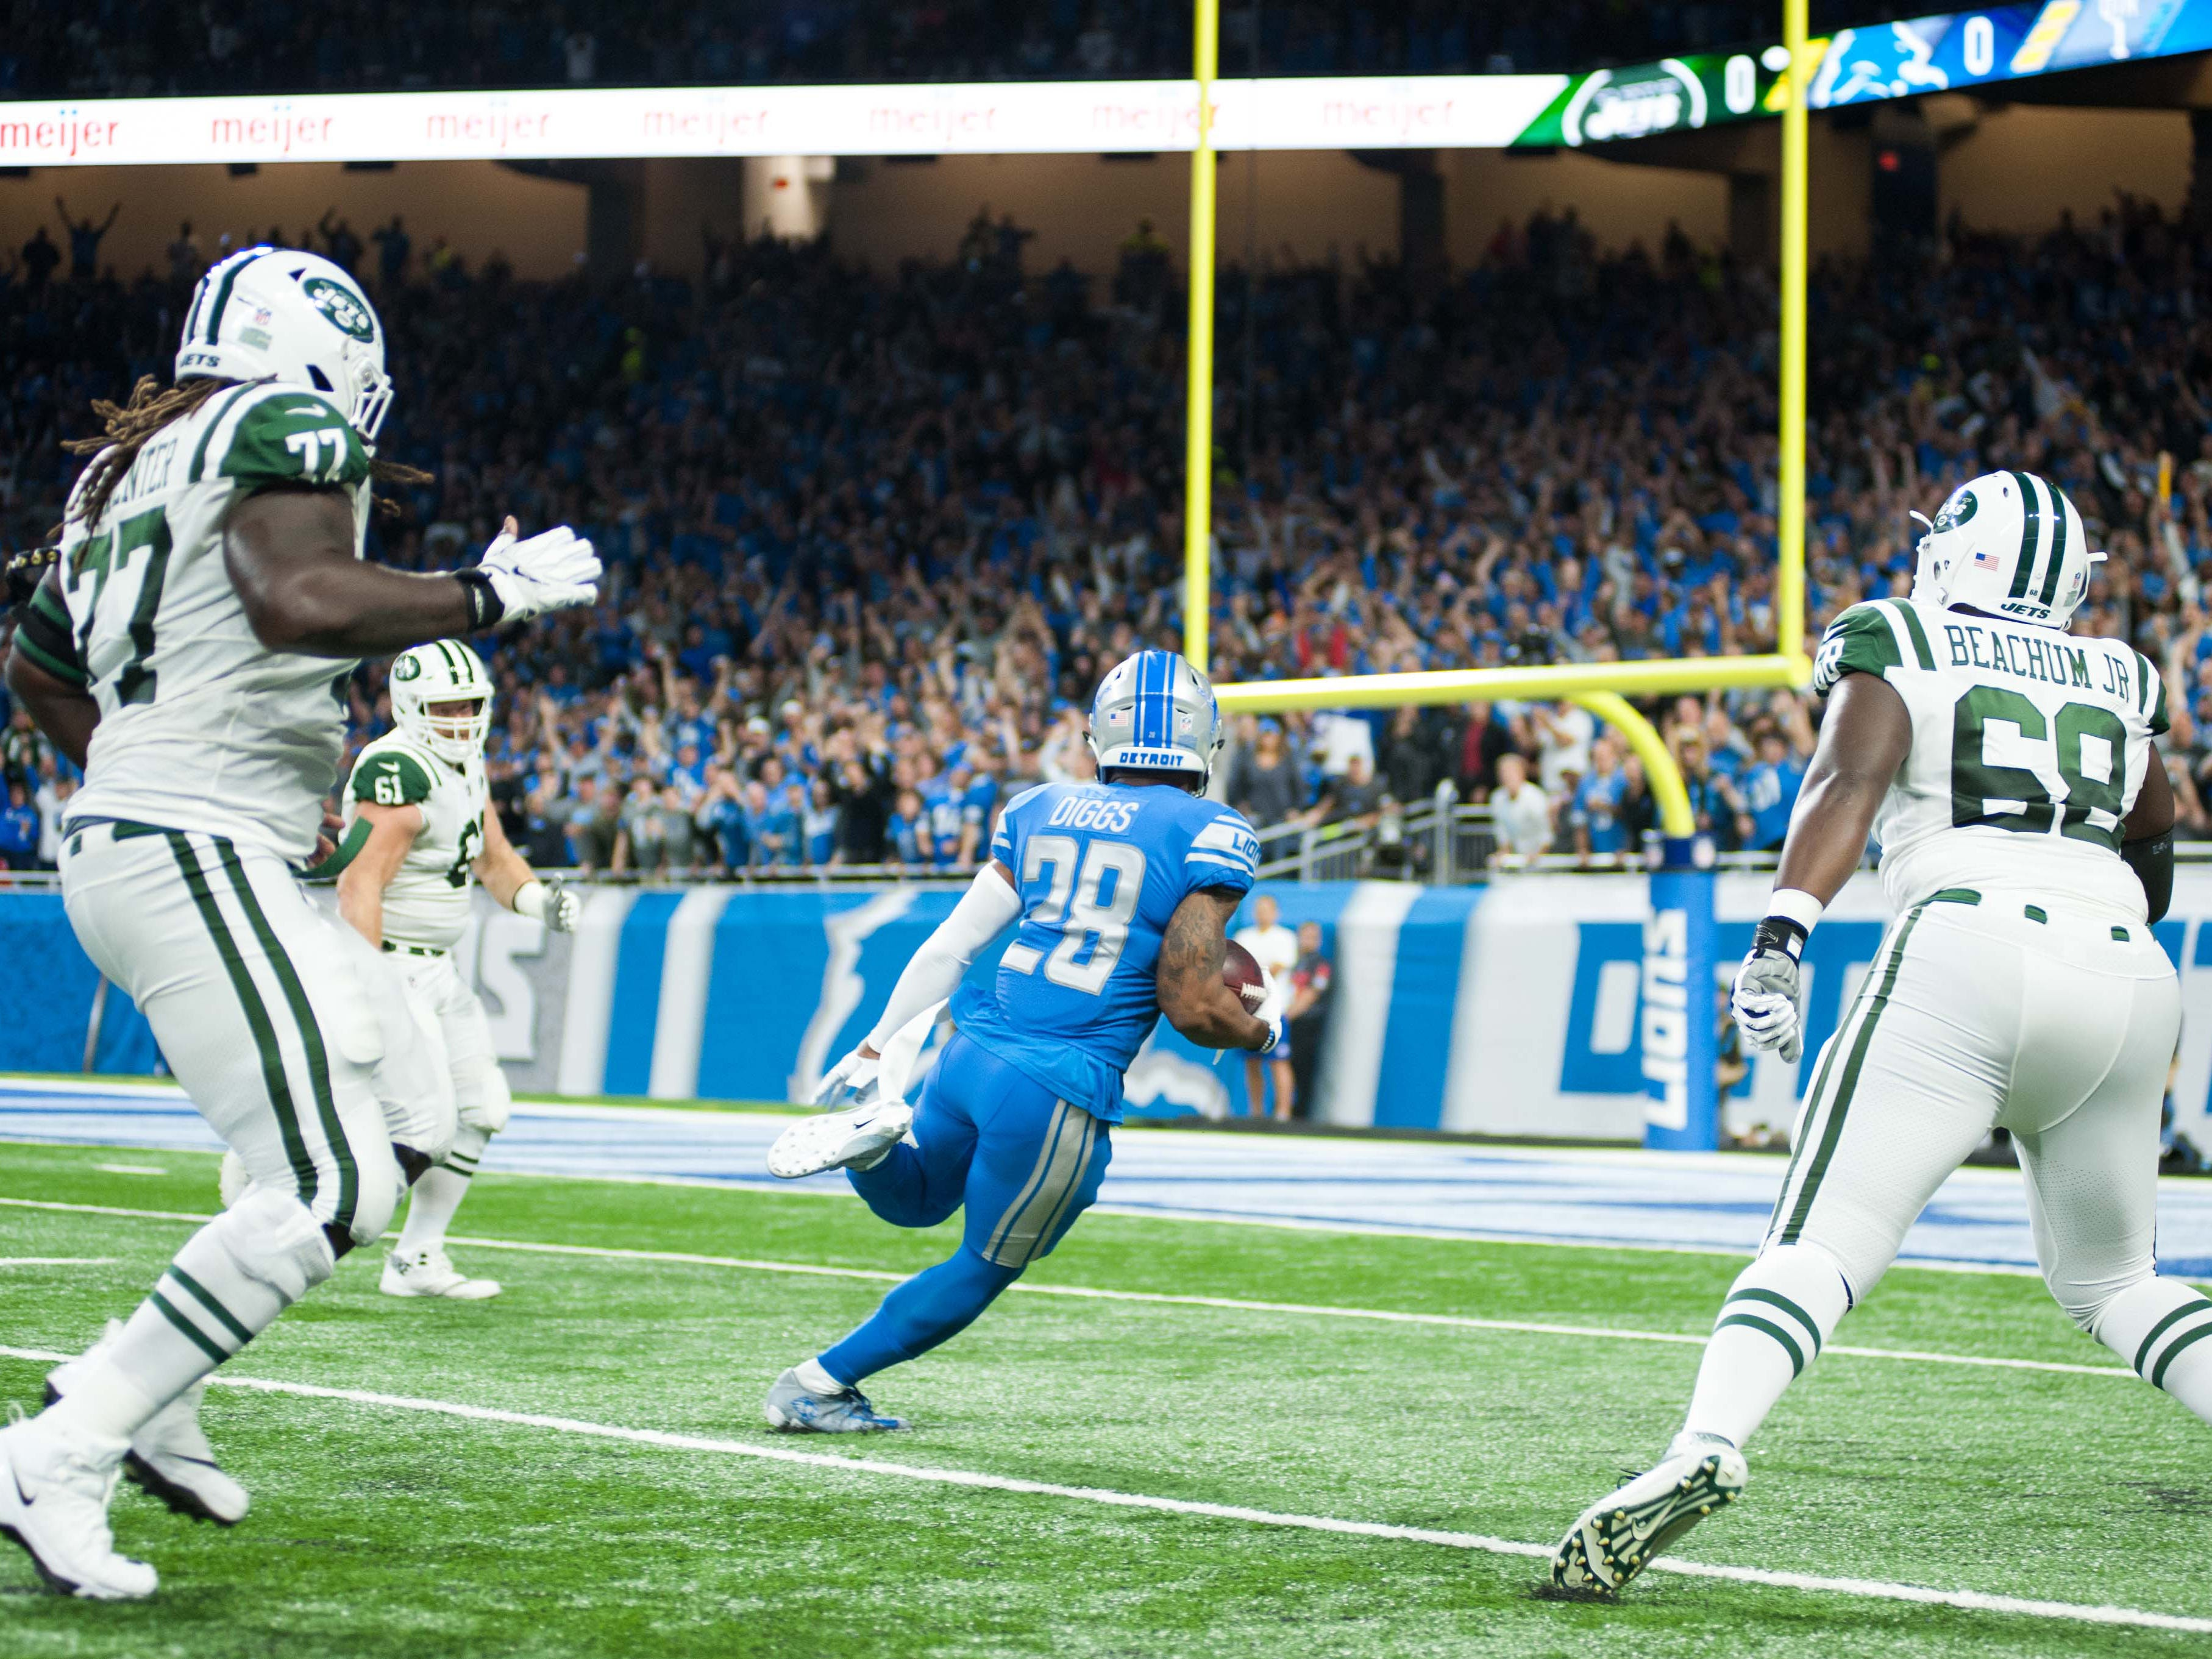 Detroit Lions cornerback Quandre Diggs makes an interception and scores a touchdown against the New York Jets. The pick-six came on Jets QB Sam Darnold's first career pass attempt.